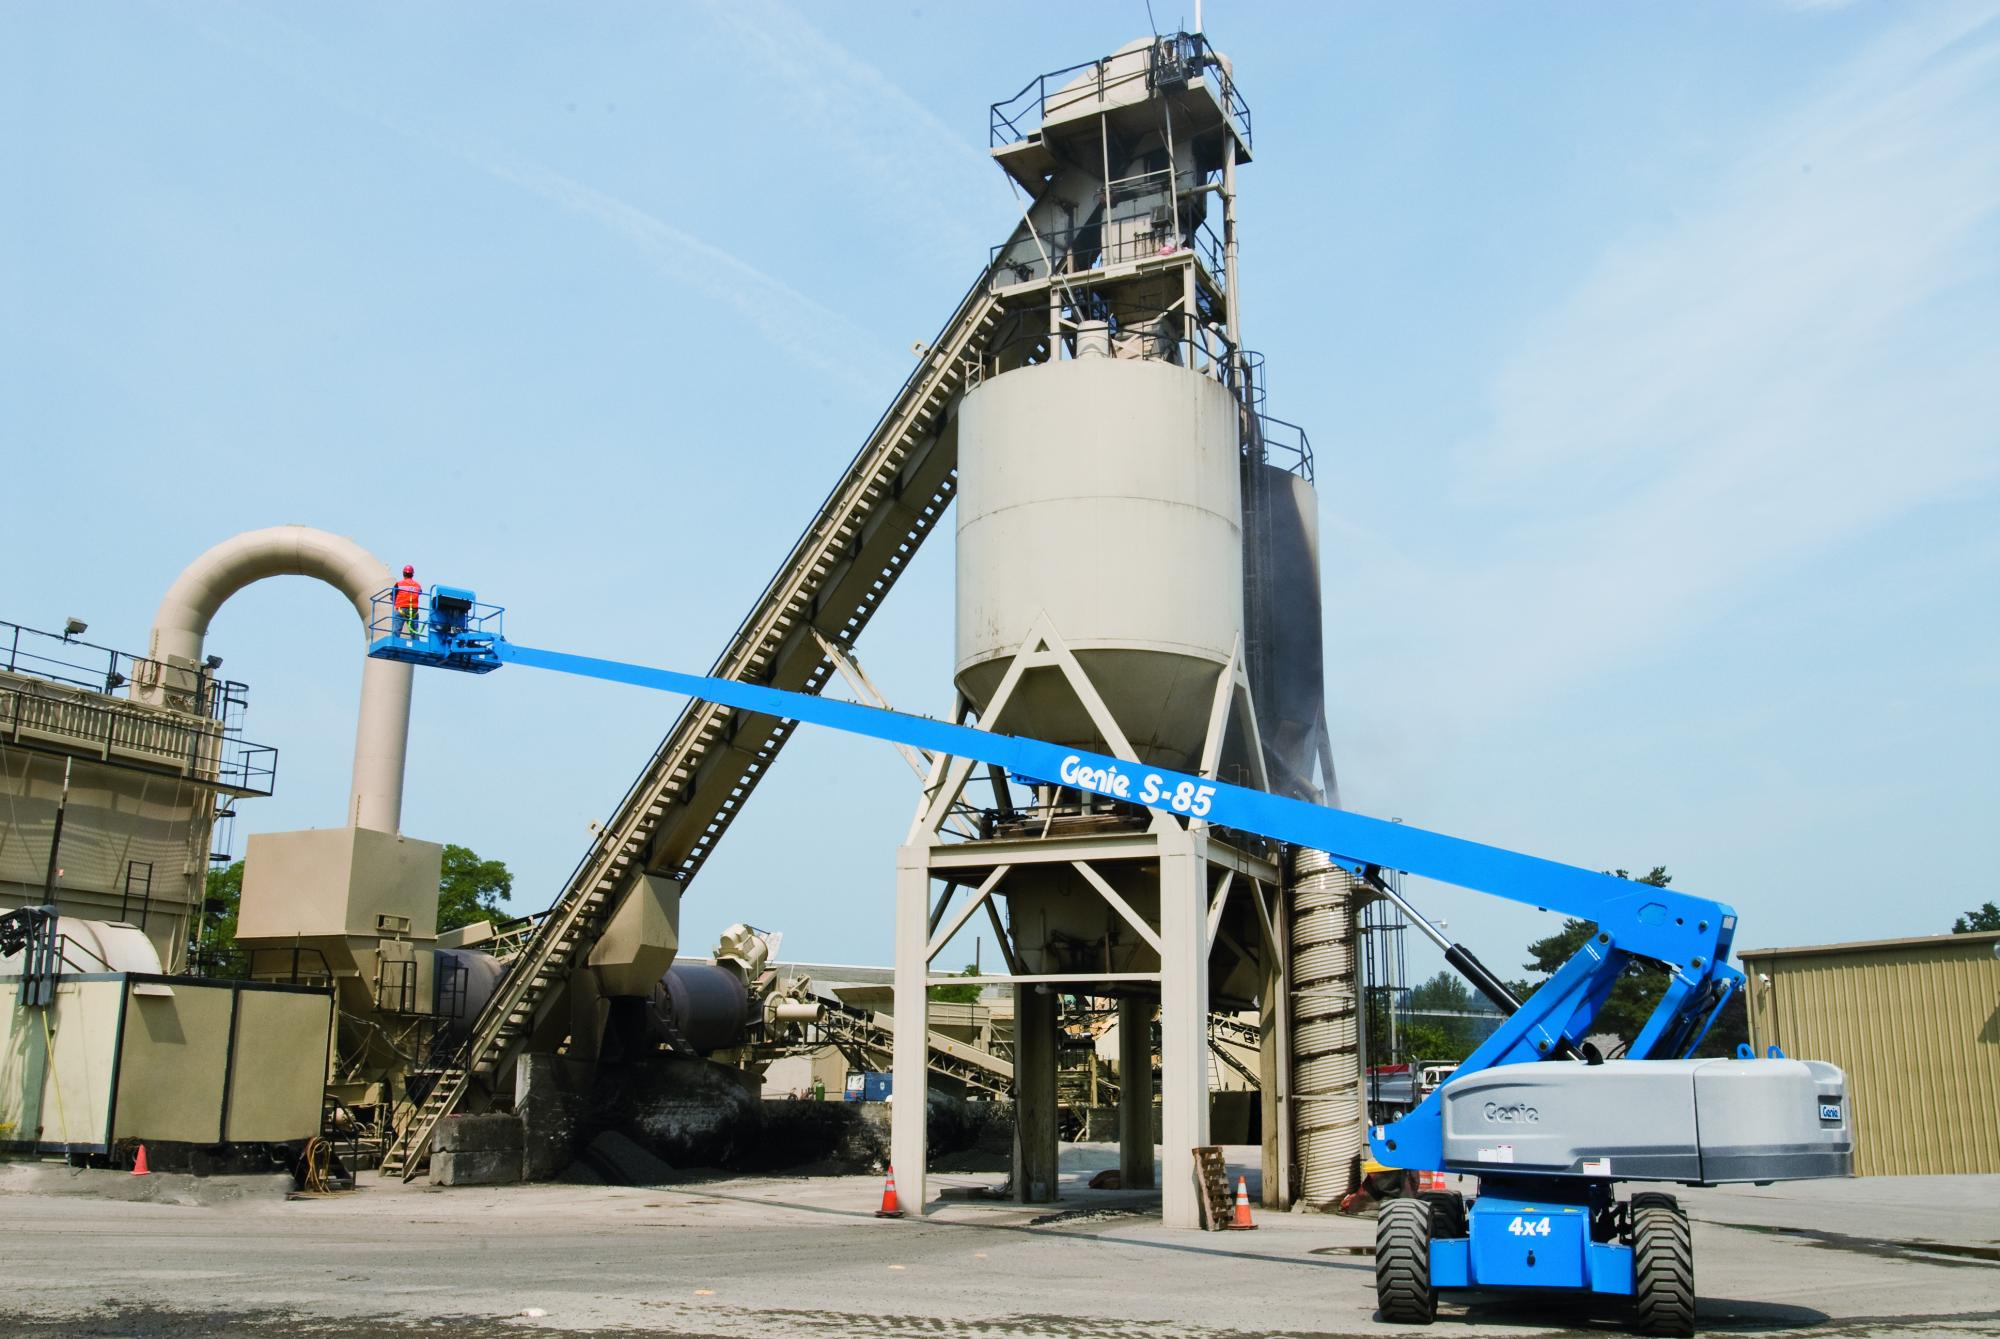 genie174 s80 telescopic boom lift working at height